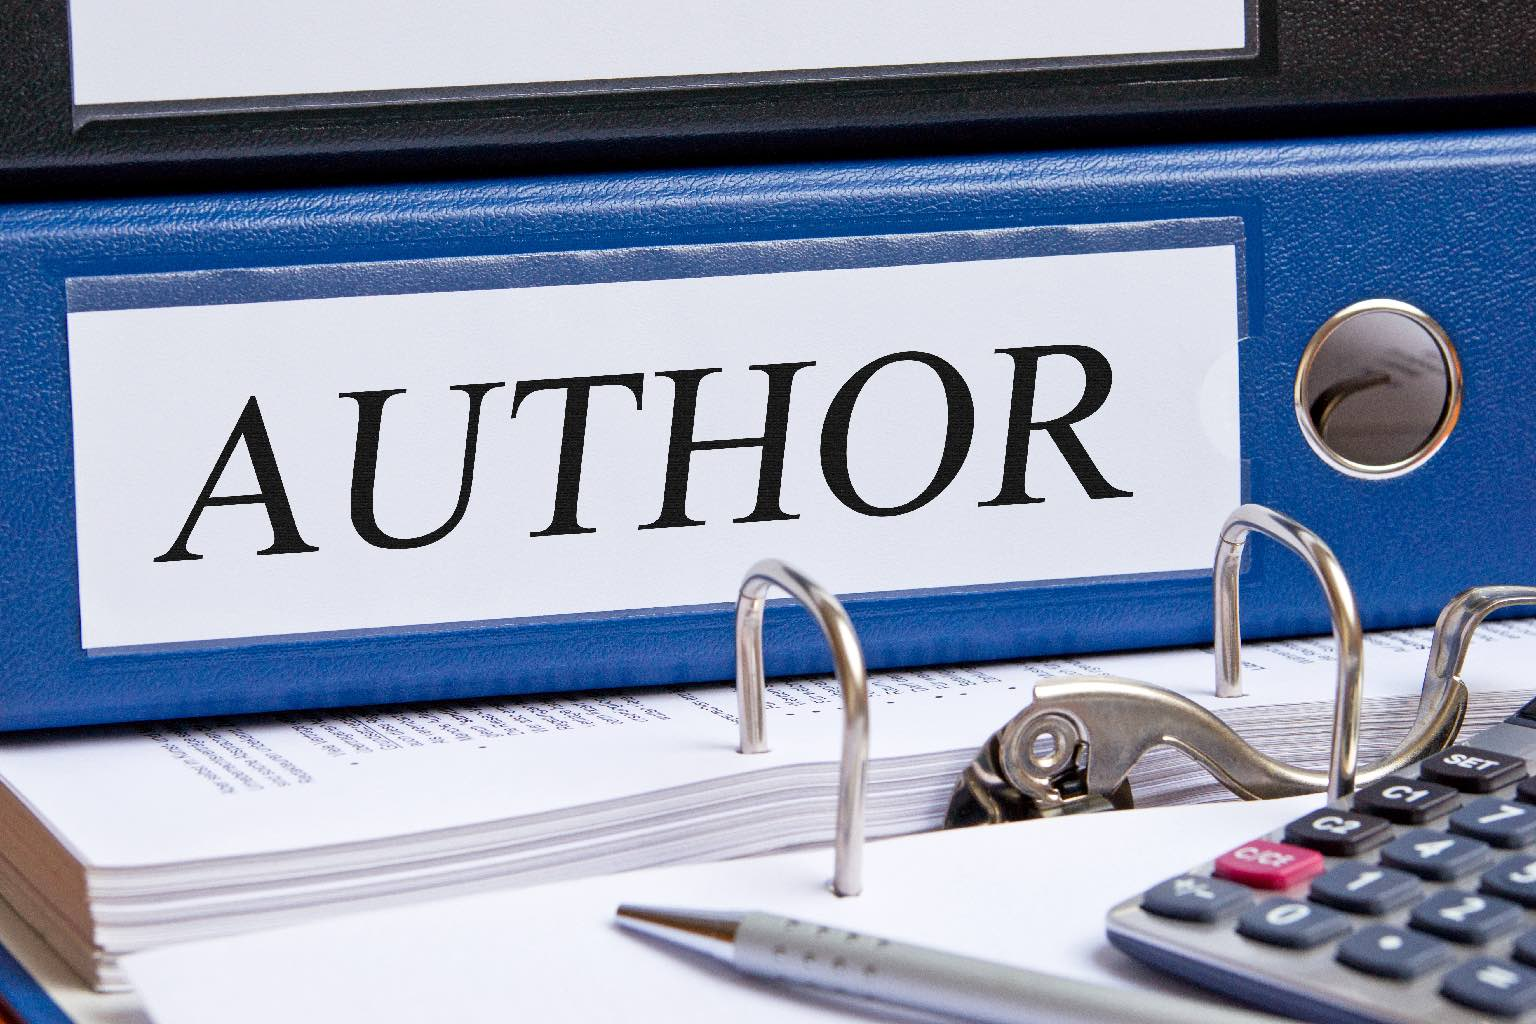 Author - blue binder in the office